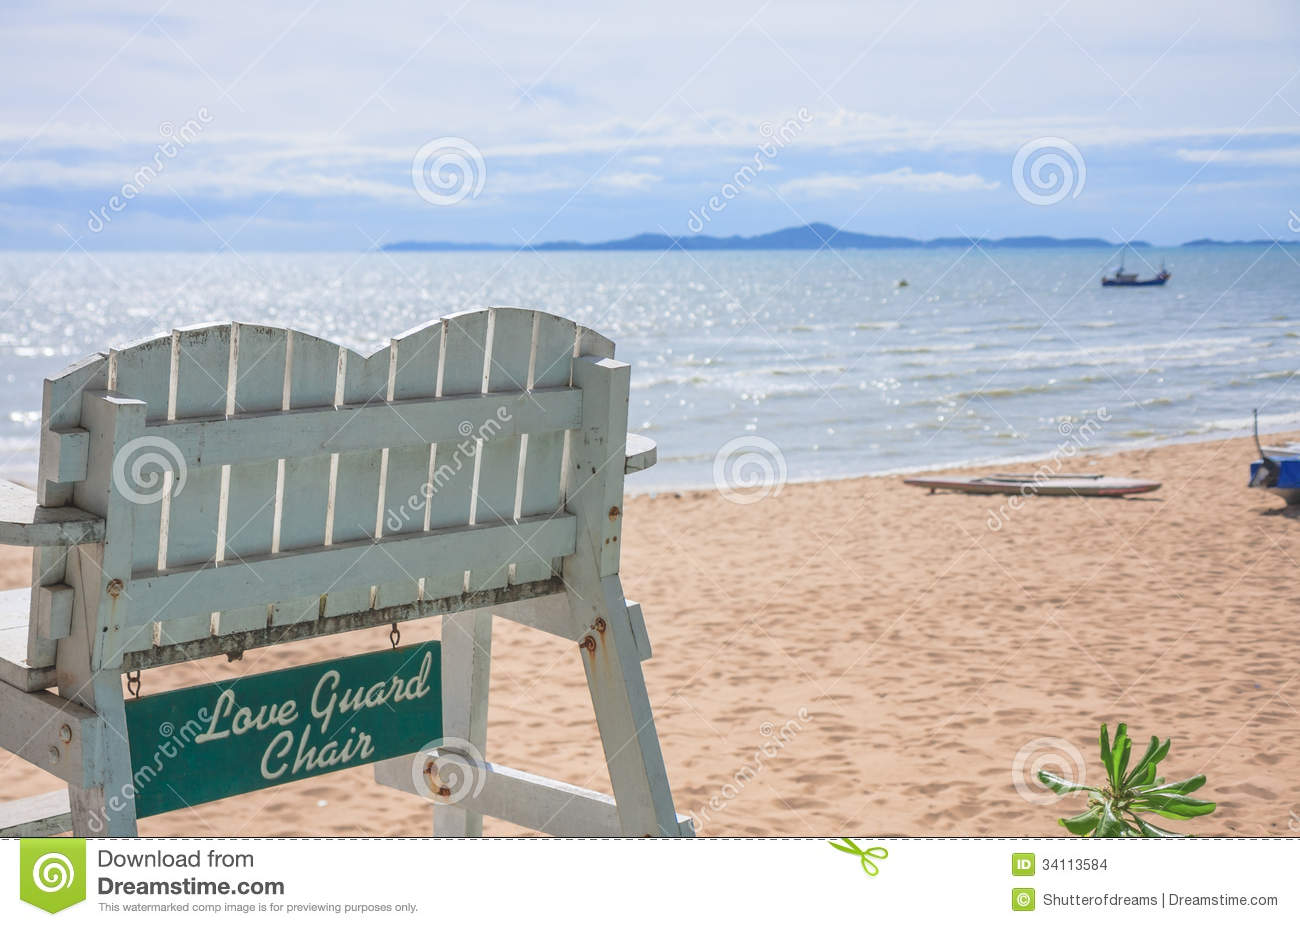 how to build a lifeguard chair big round living room chairs wooden plans here san